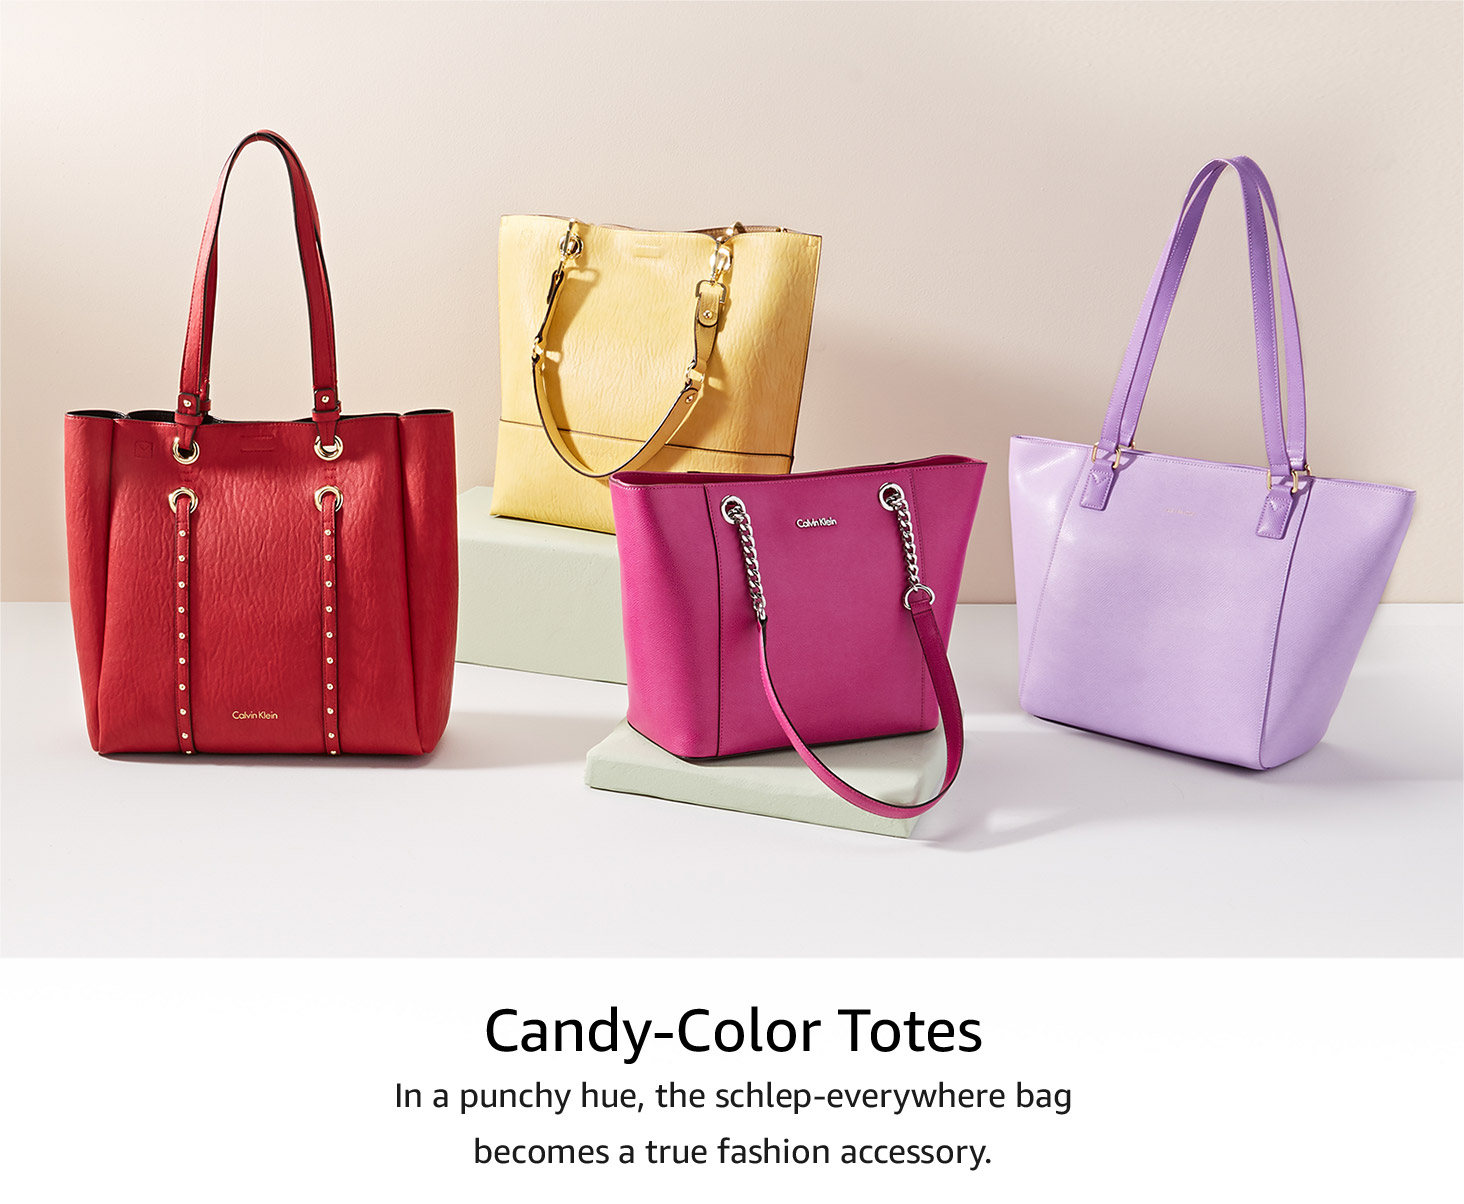 Candy-Color Totes